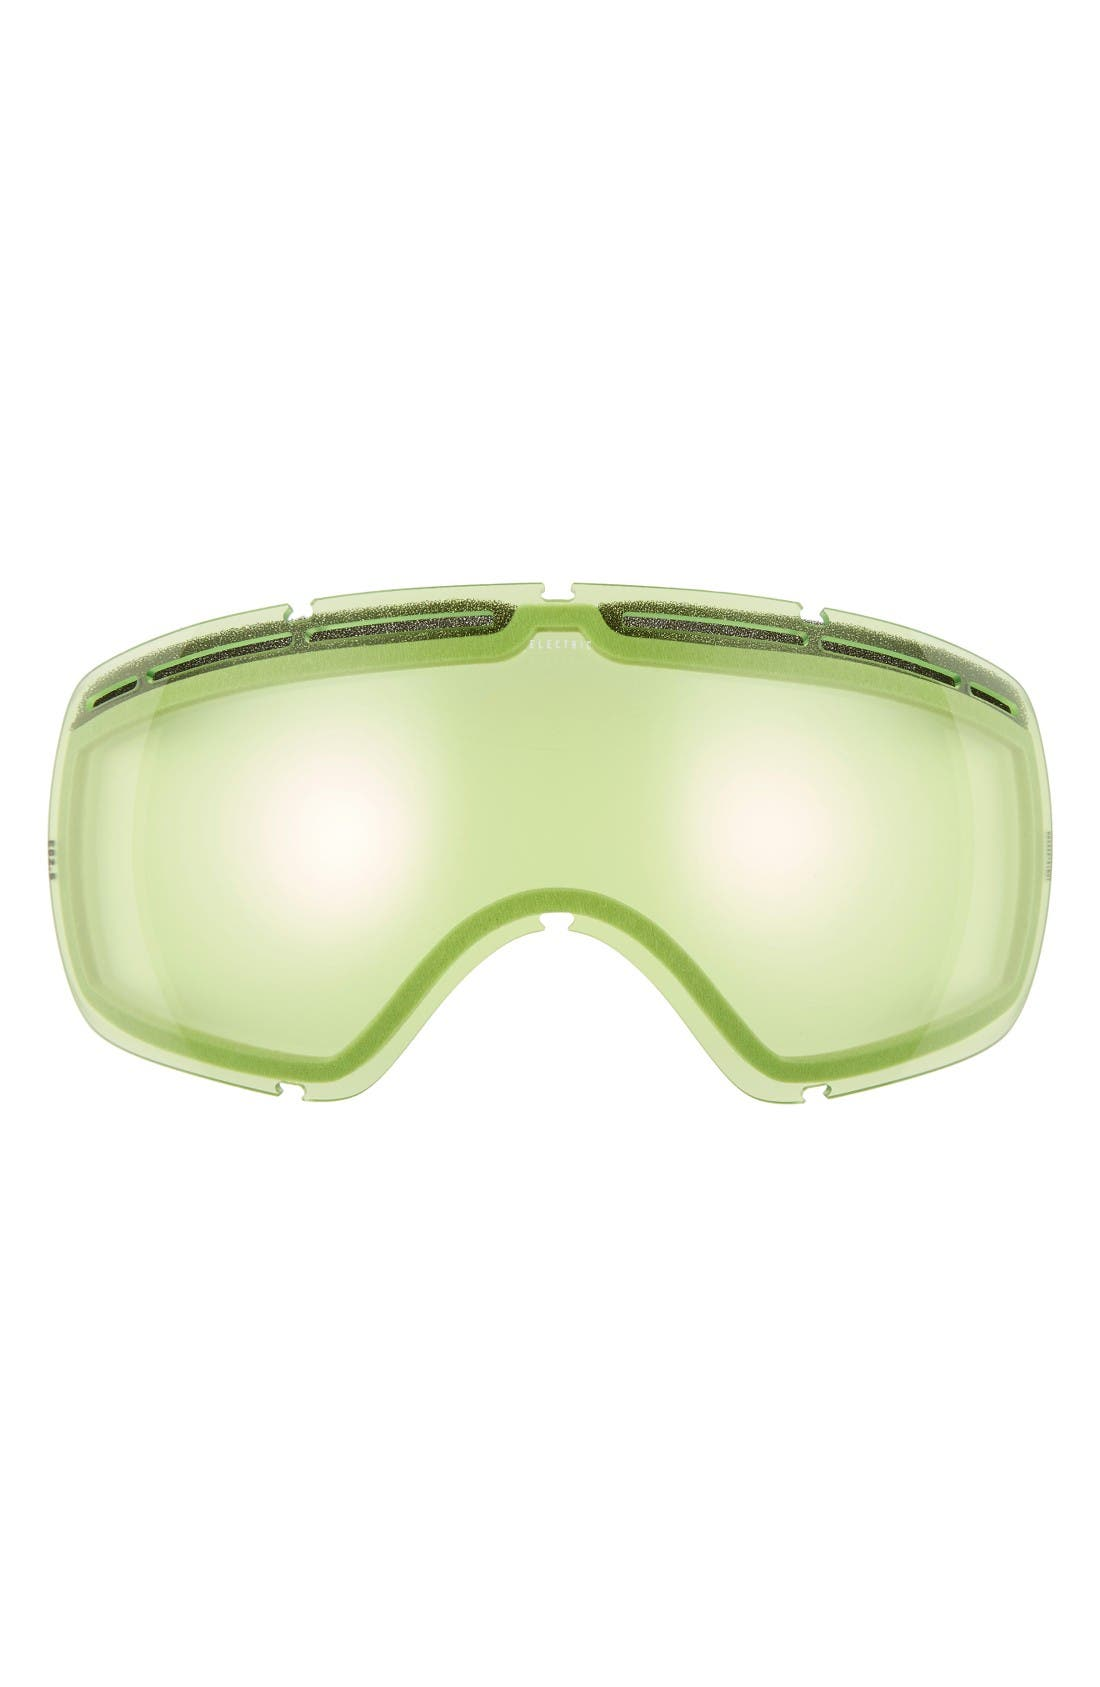 Alternate Image 3  - ELECTRIC EG2 225mm Snow Goggles